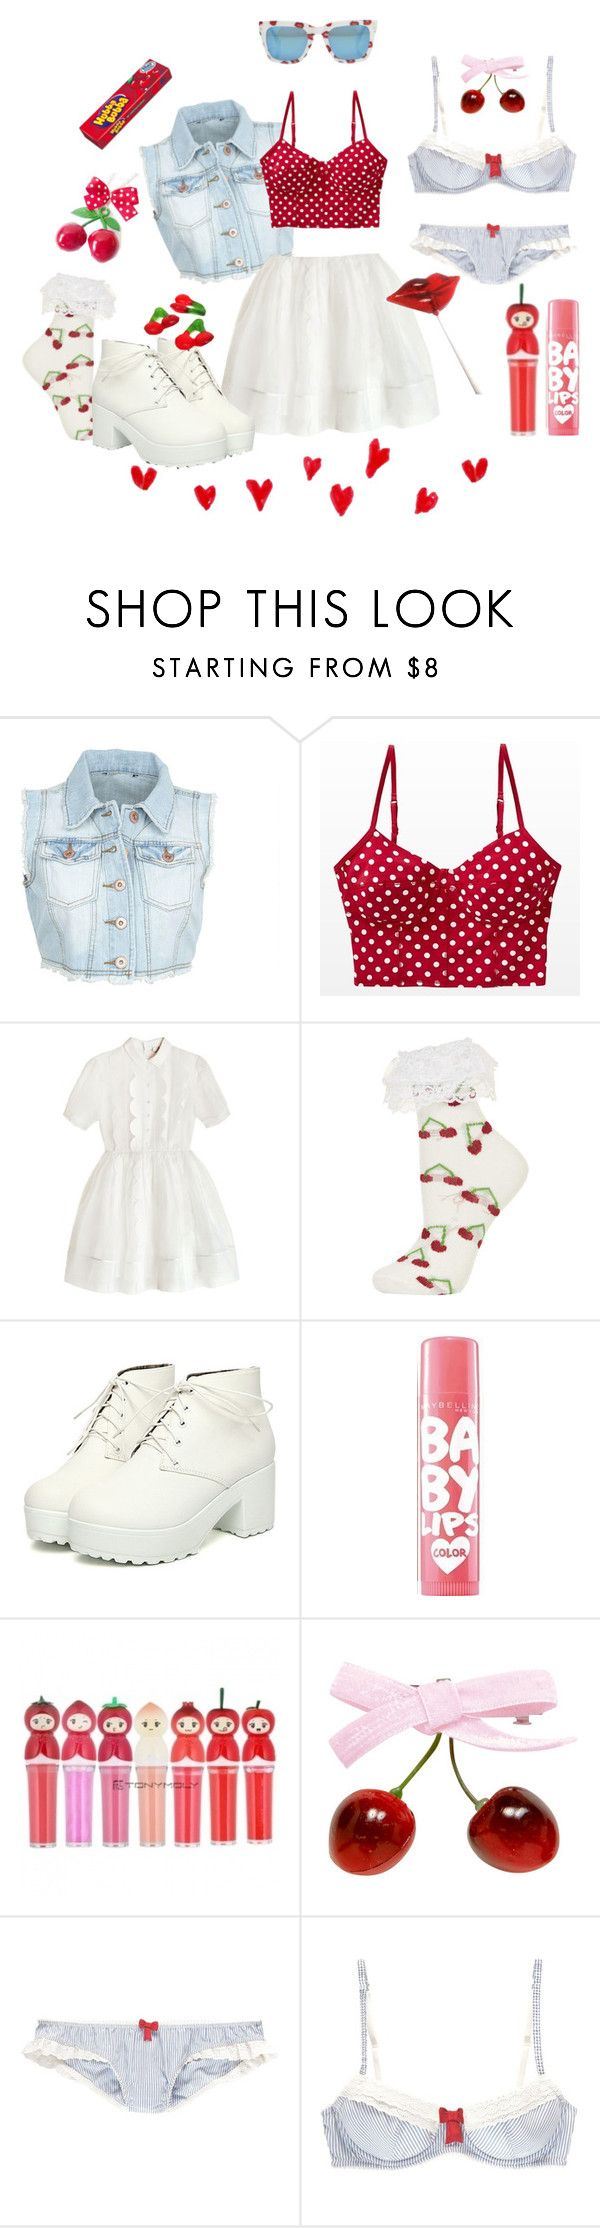 """""""Nymphets taste of cherry pie"""" by pinifera ❤ liked on Polyvore featuring To Be Adored, Topshop, Maybelline, TONYMOLY, Jack Wills and FRUIT"""